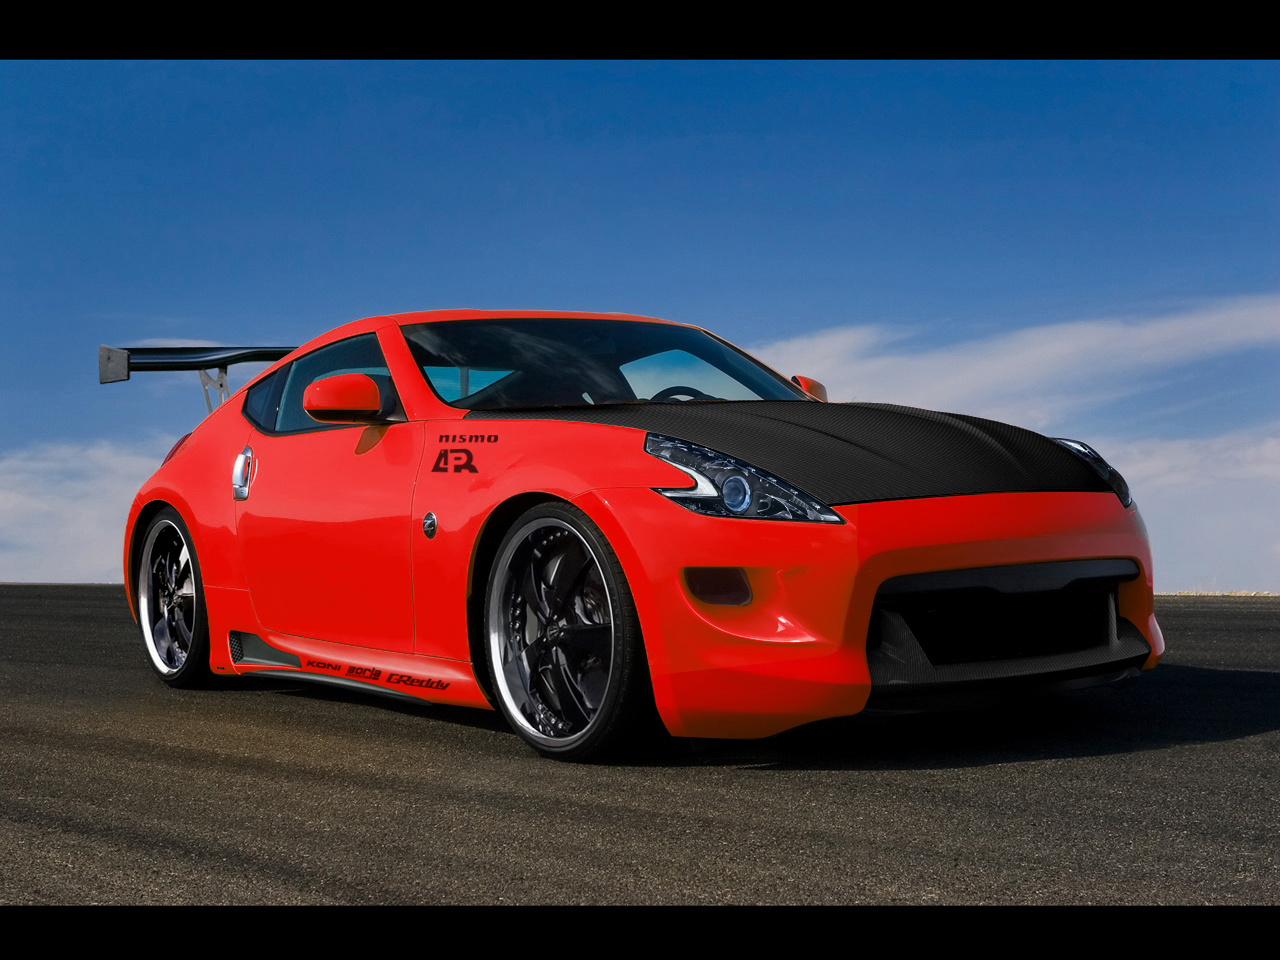 Nissan 370Z Wallpaper by DjHeAt on DeviantArt